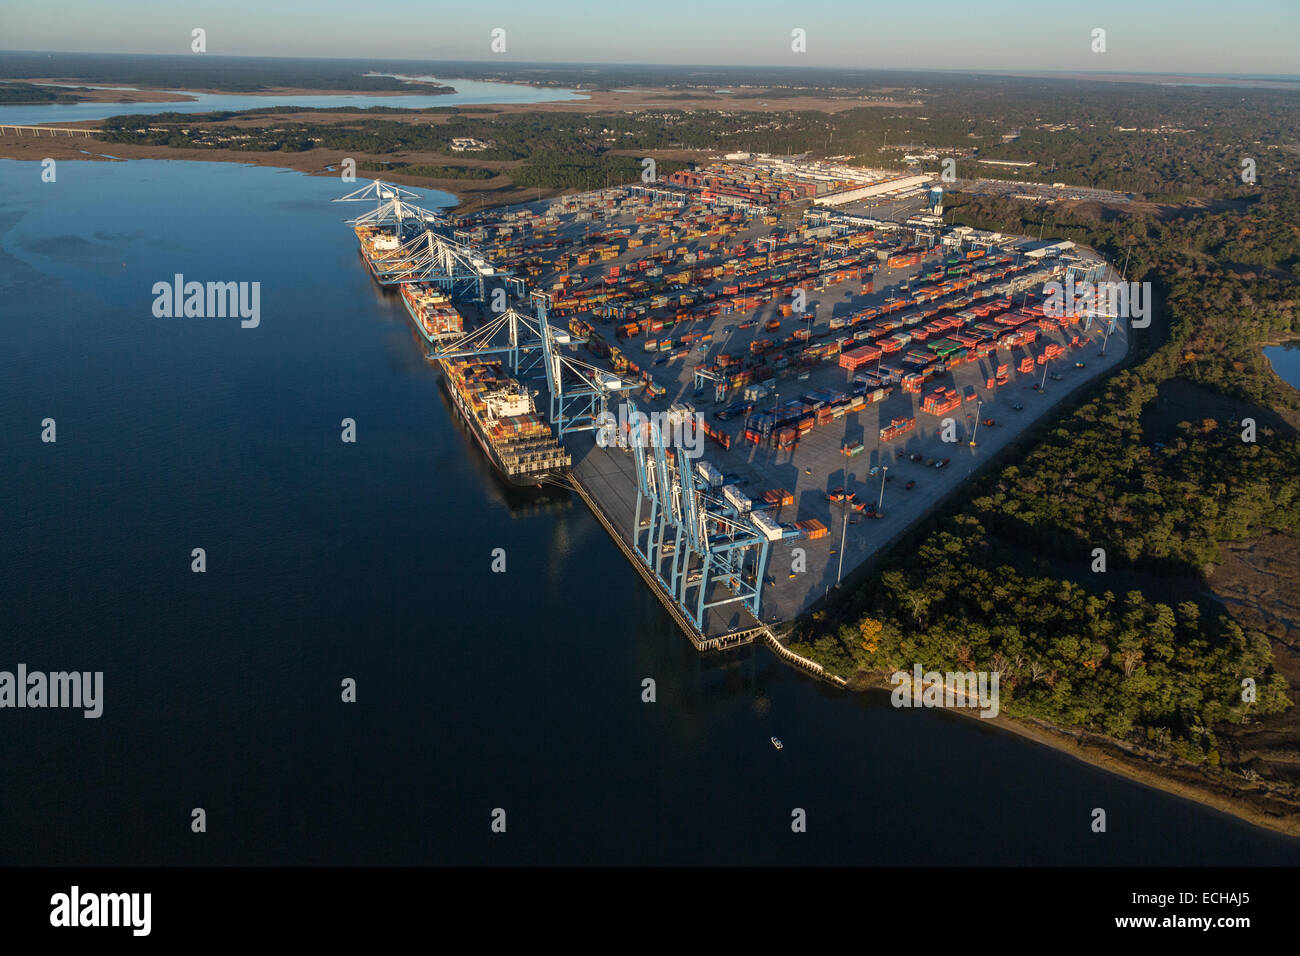 Aerial view of the Wando Welch shipping container port in Mt Pleasant, SC - Stock Image